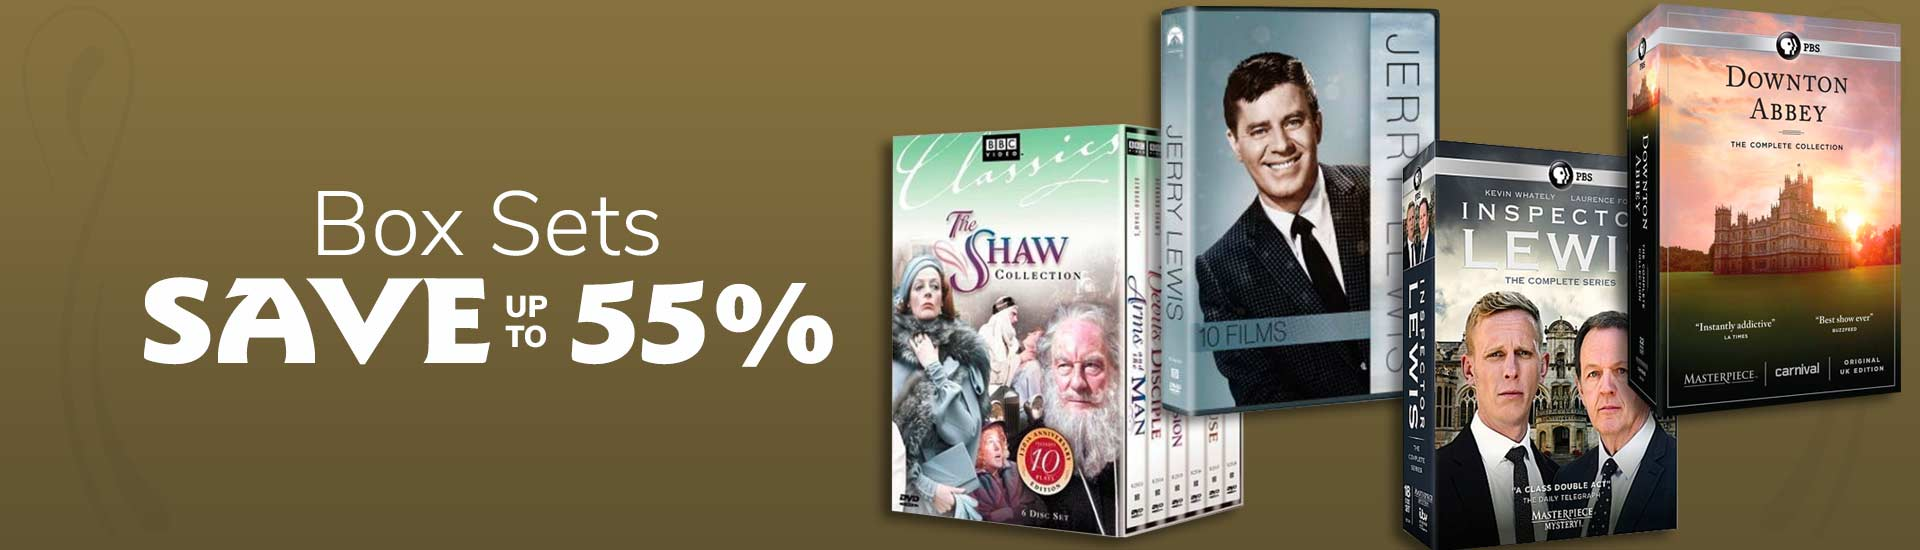 Box Sets Sale, Save up to 55%